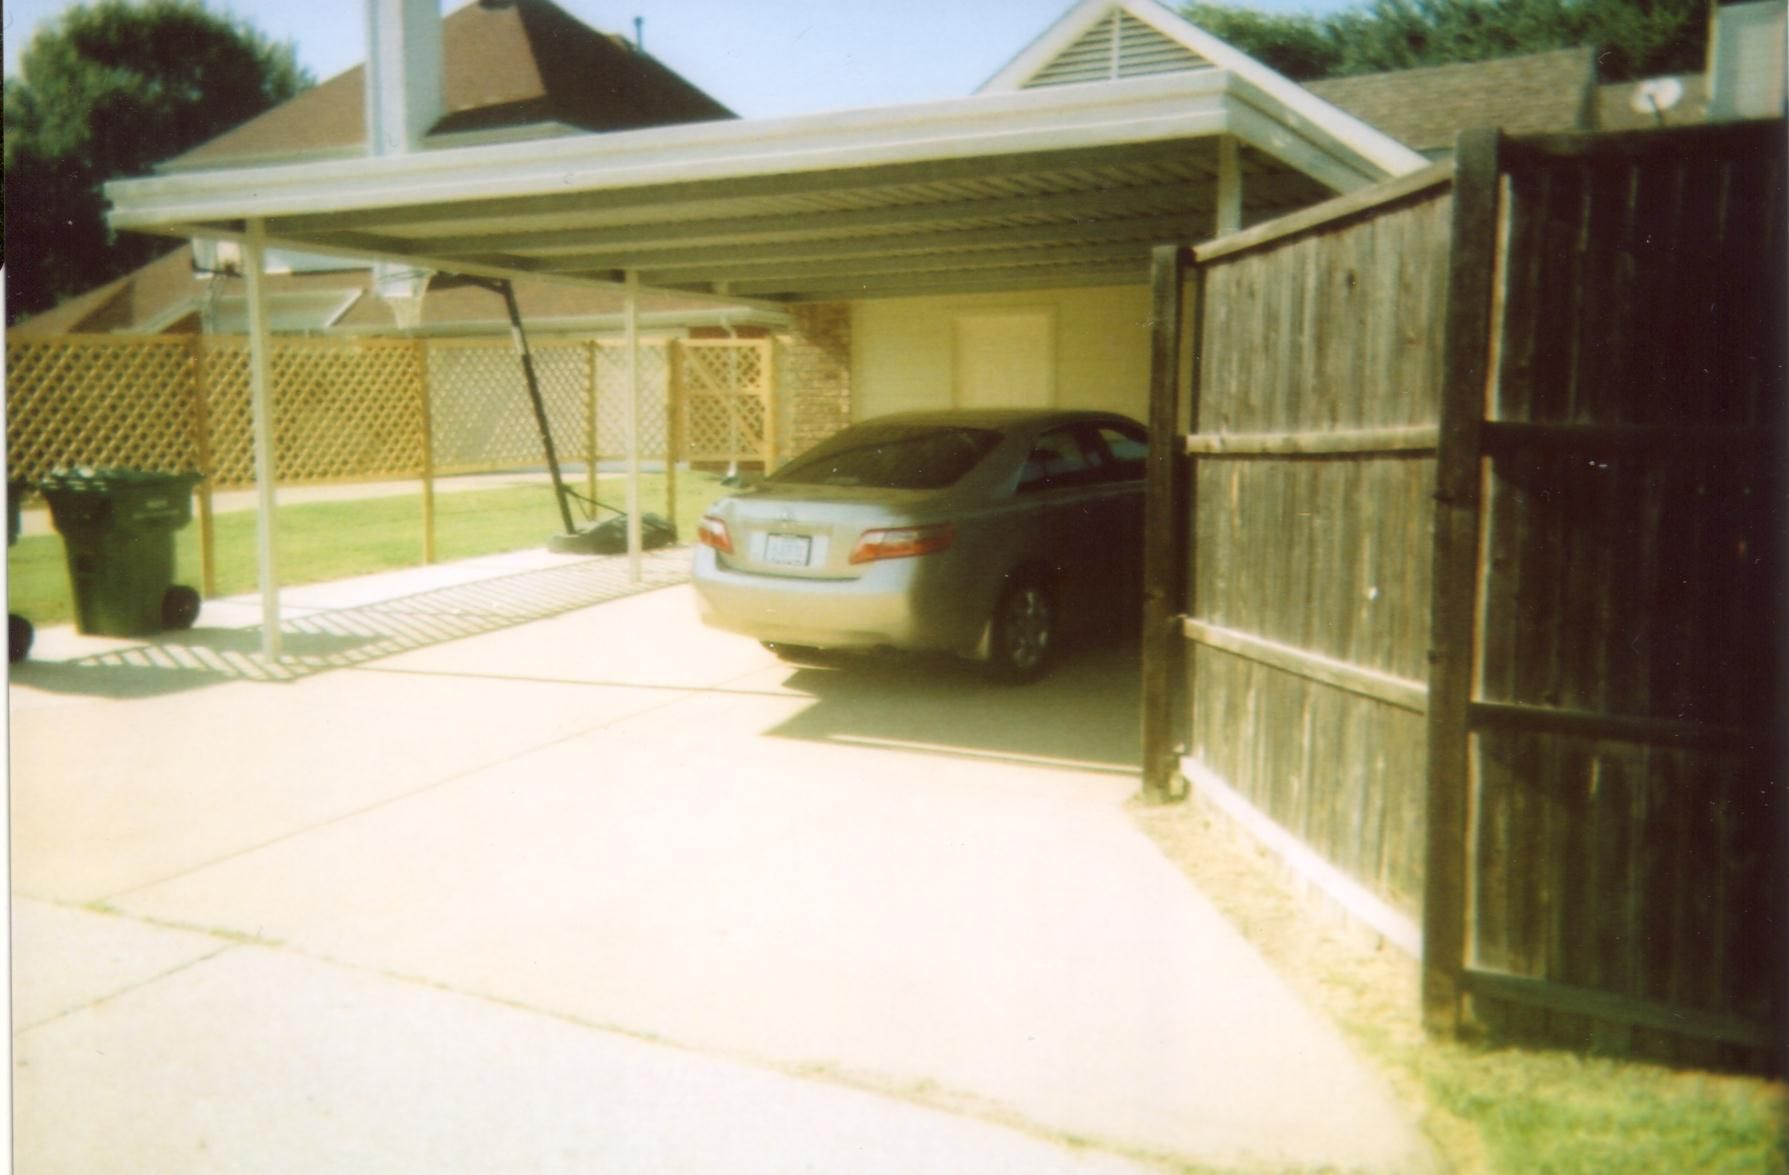 Carport for Vehicles